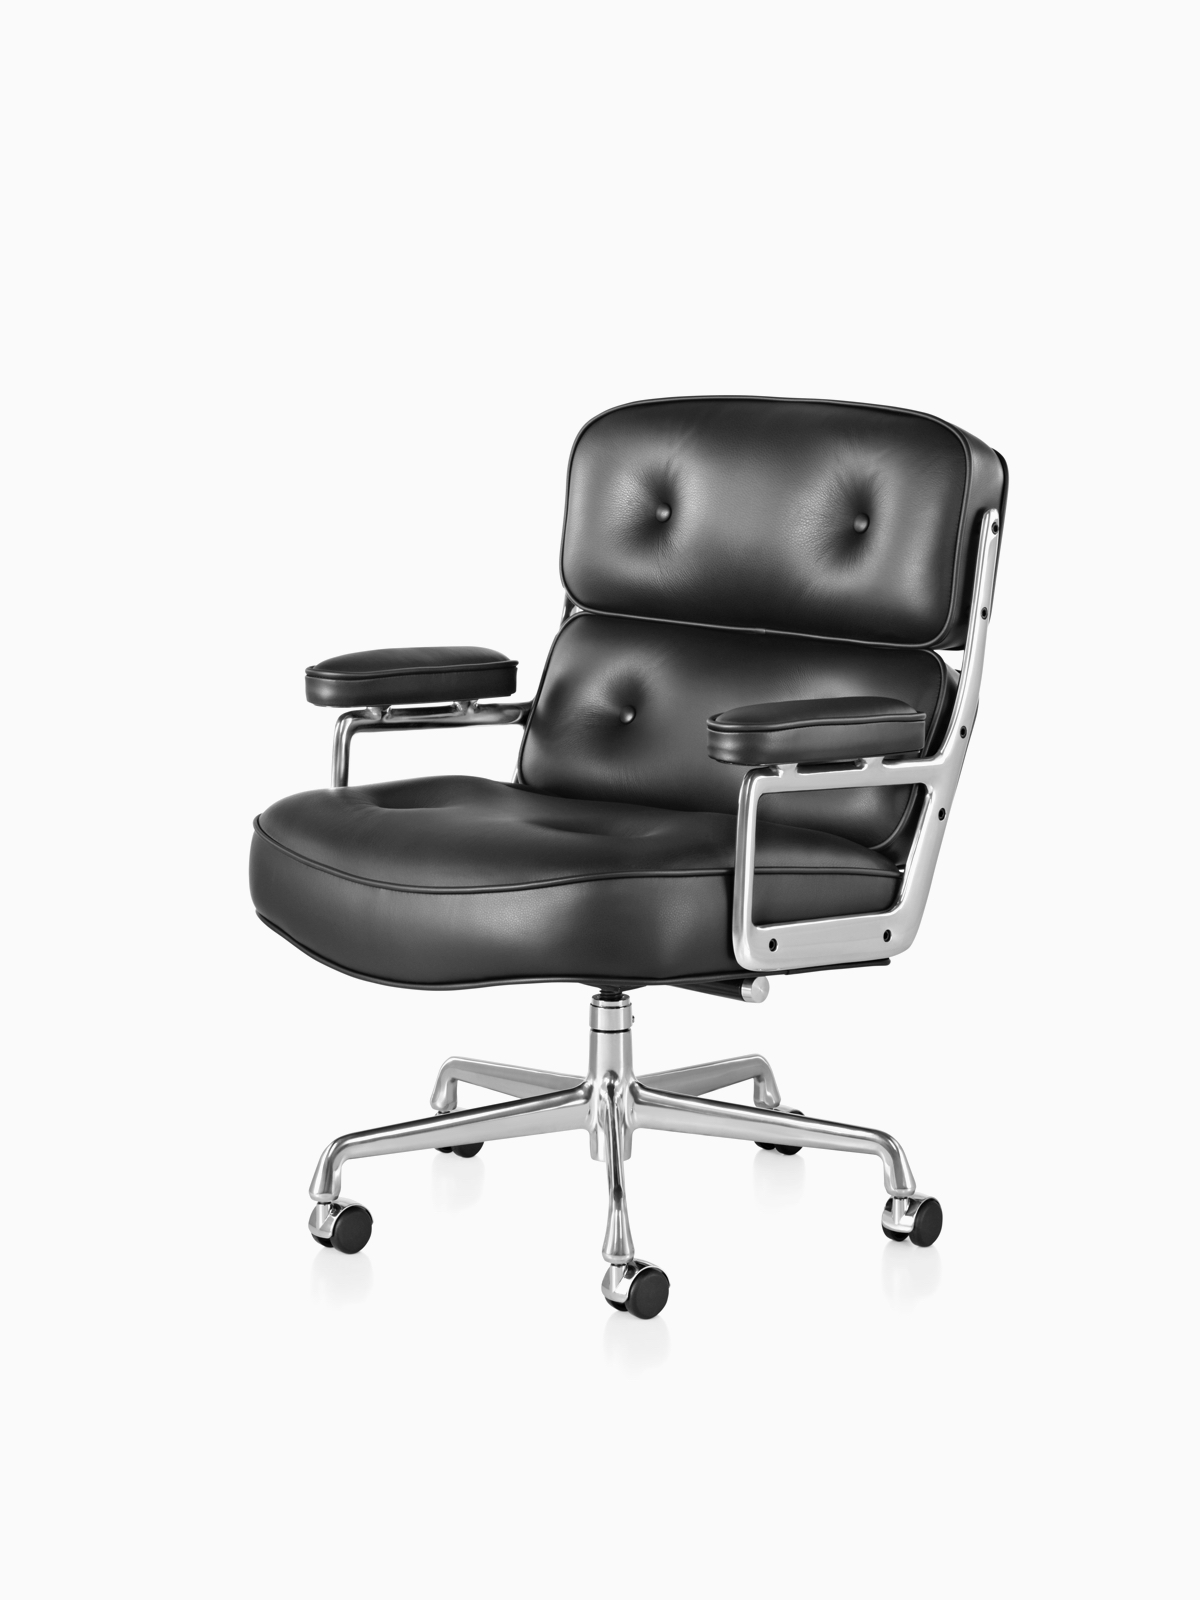 Eames Desk Chair Eames Executive Office Chairs Herman Miller